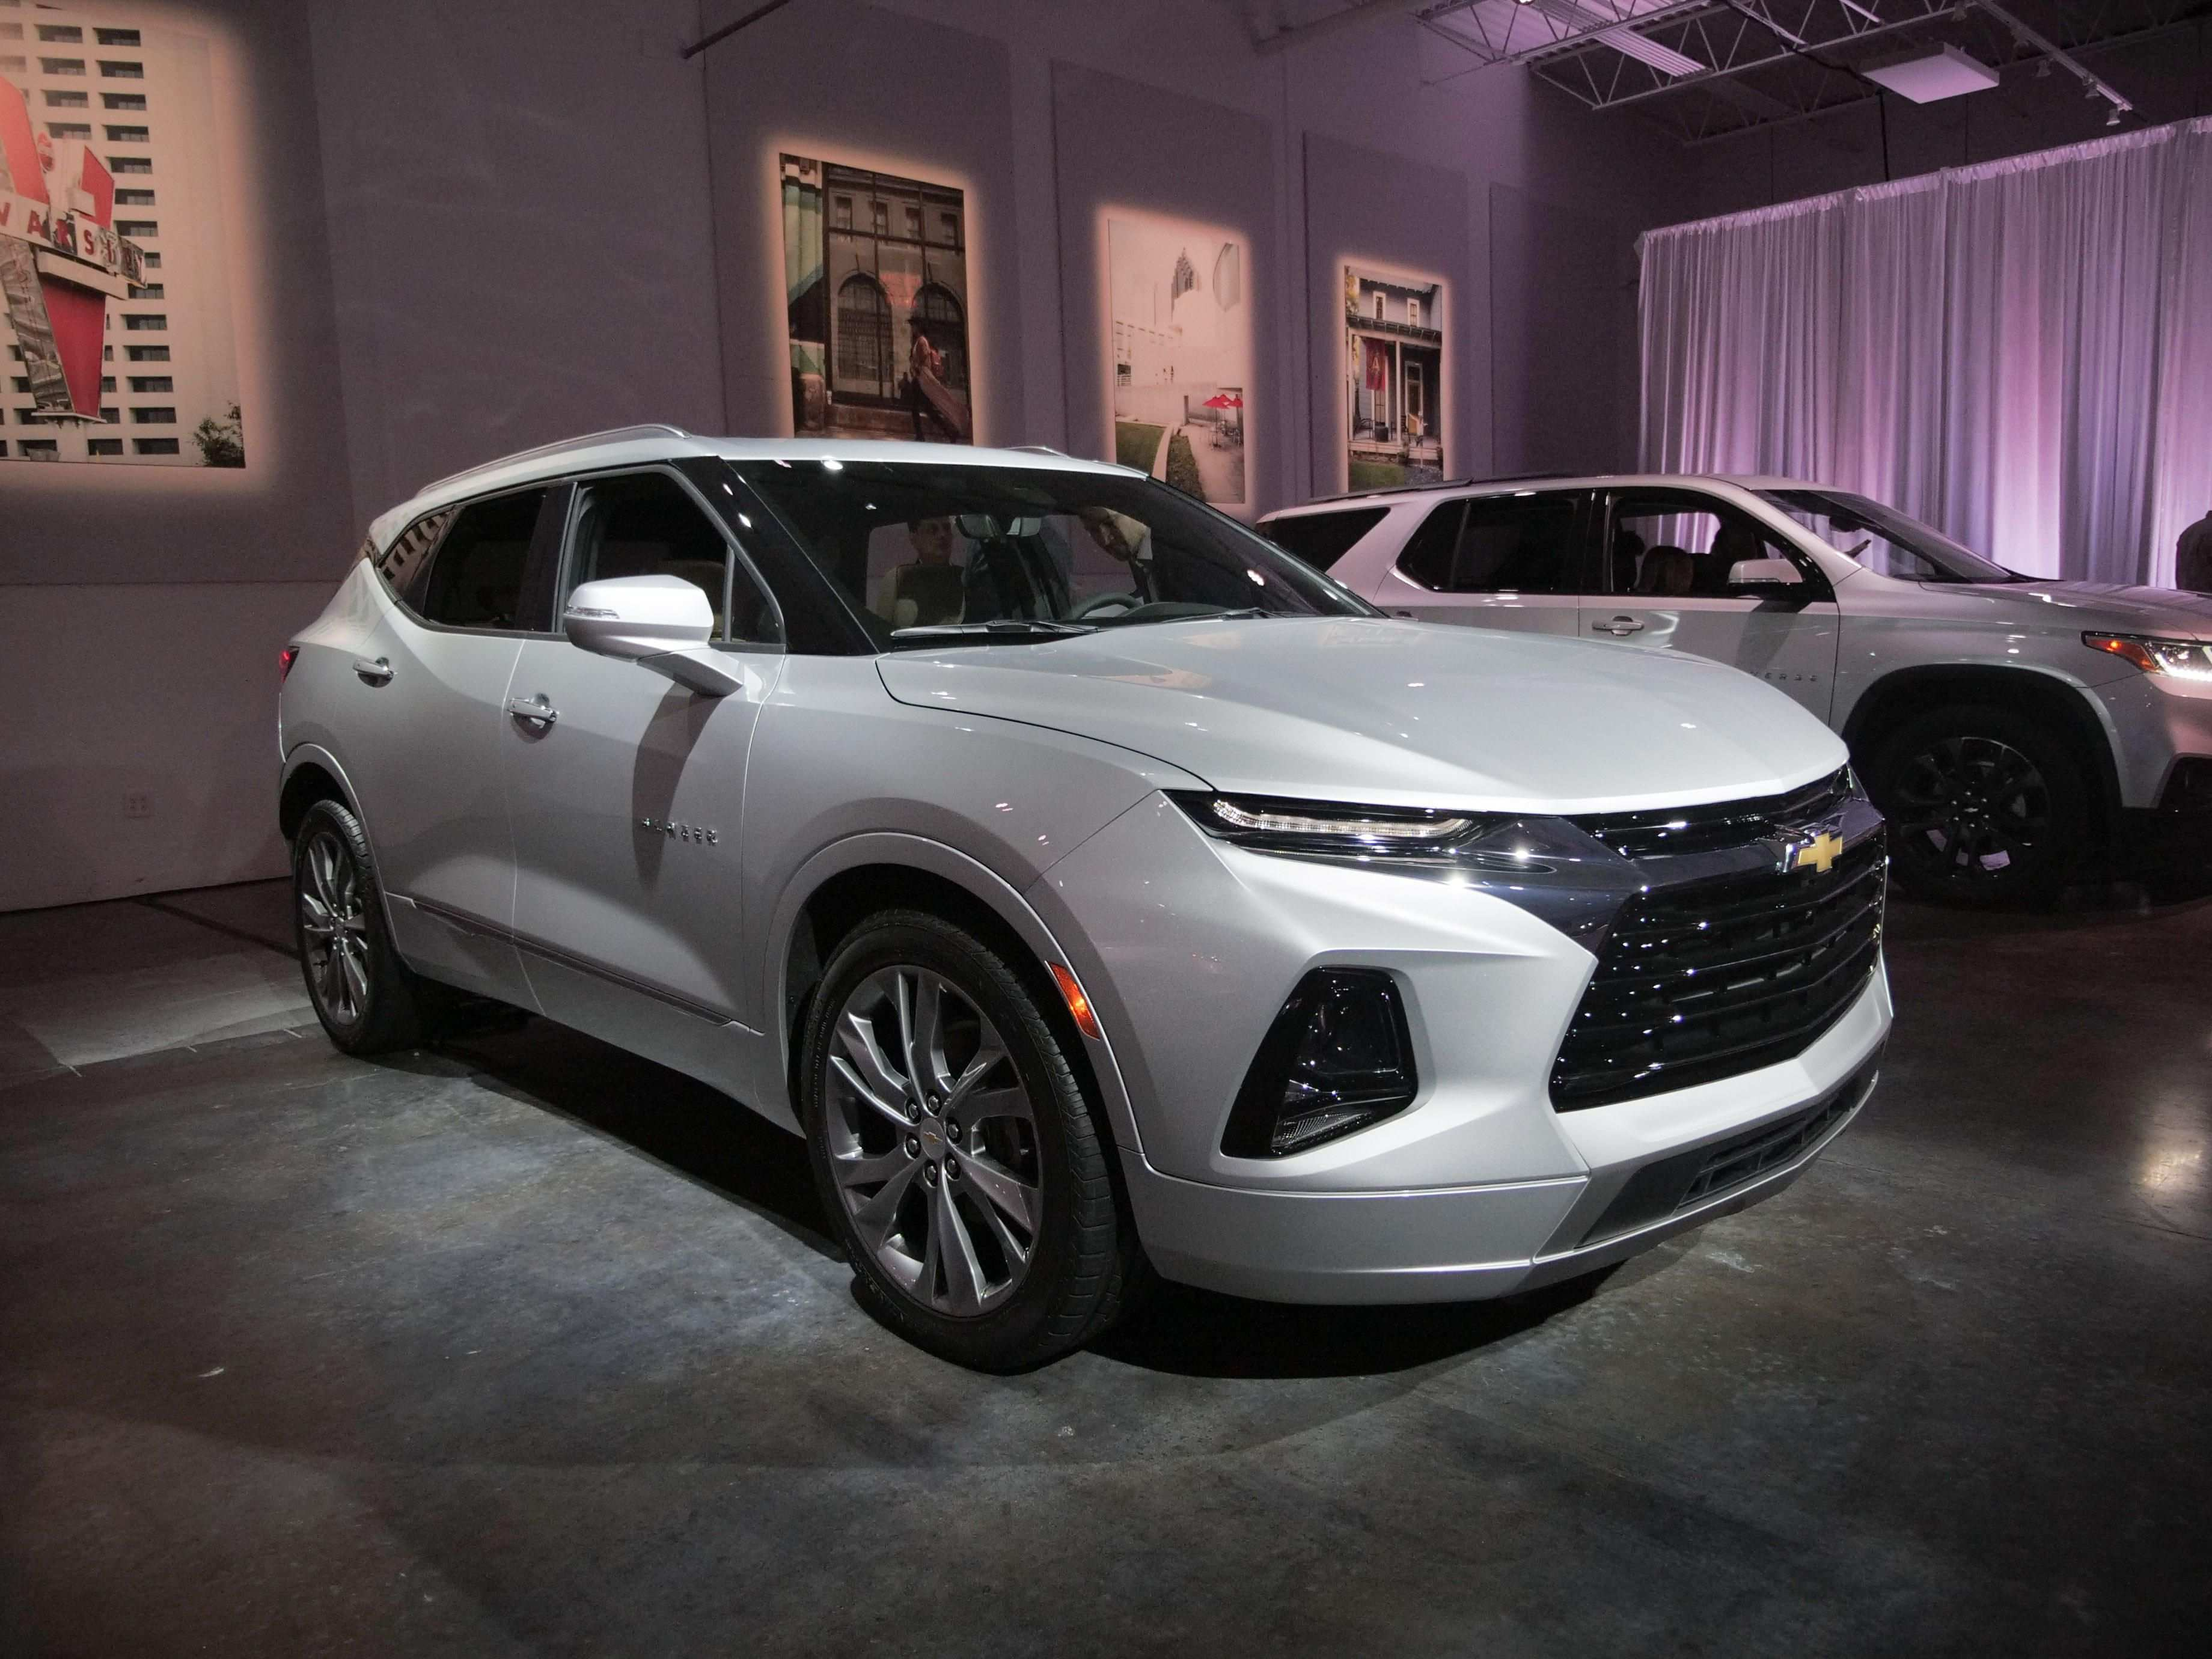 39 Gallery of 2019 Chevrolet Models Specs and Review for 2019 Chevrolet Models